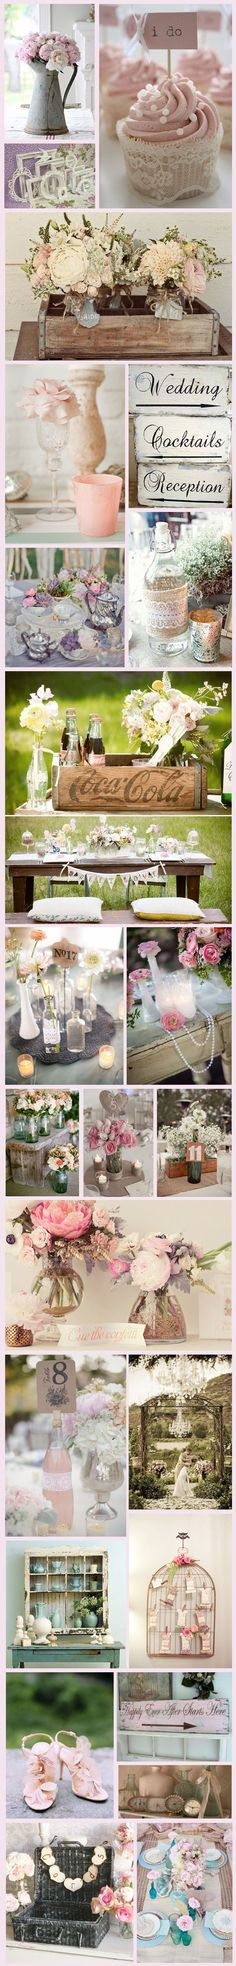 Rustic Vintage Themed Ideas. wedding